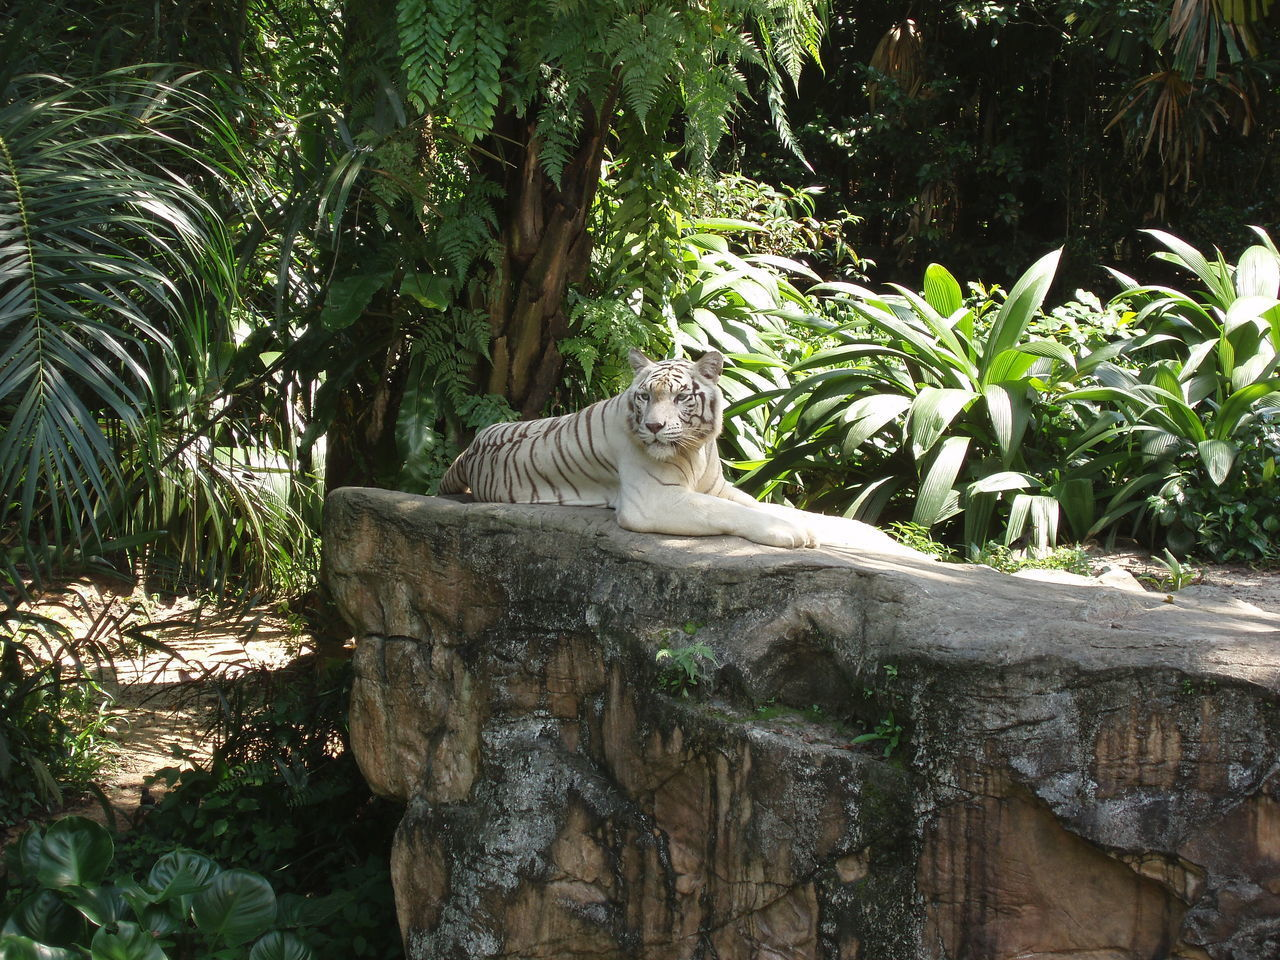 animal themes, one animal, day, mammal, domestic cat, feline, relaxation, outdoors, palm tree, no people, plant, nature, domestic animals, tree, animals in the wild